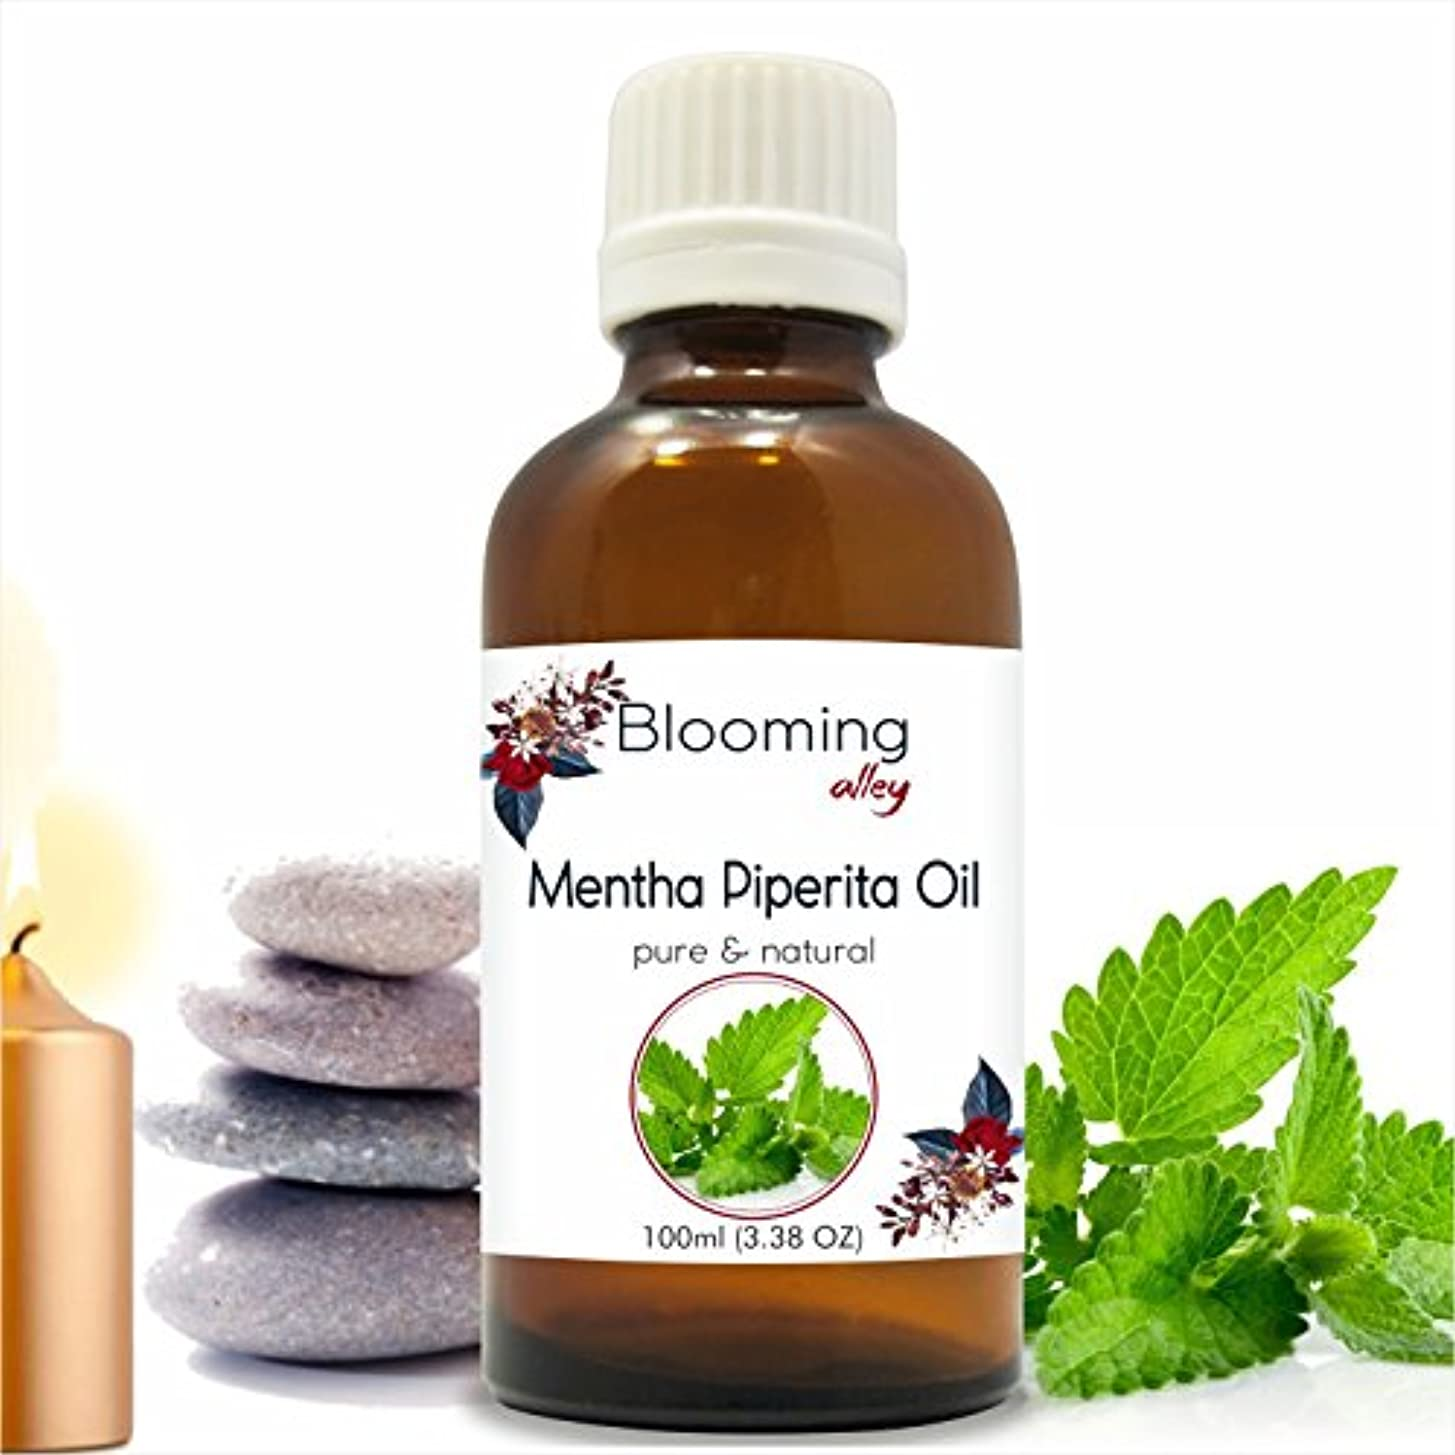 Menthapipreta Oil(Mentha Piperita) Essential Oil 100 ml or 3.38 Fl Oz by Blooming Alley